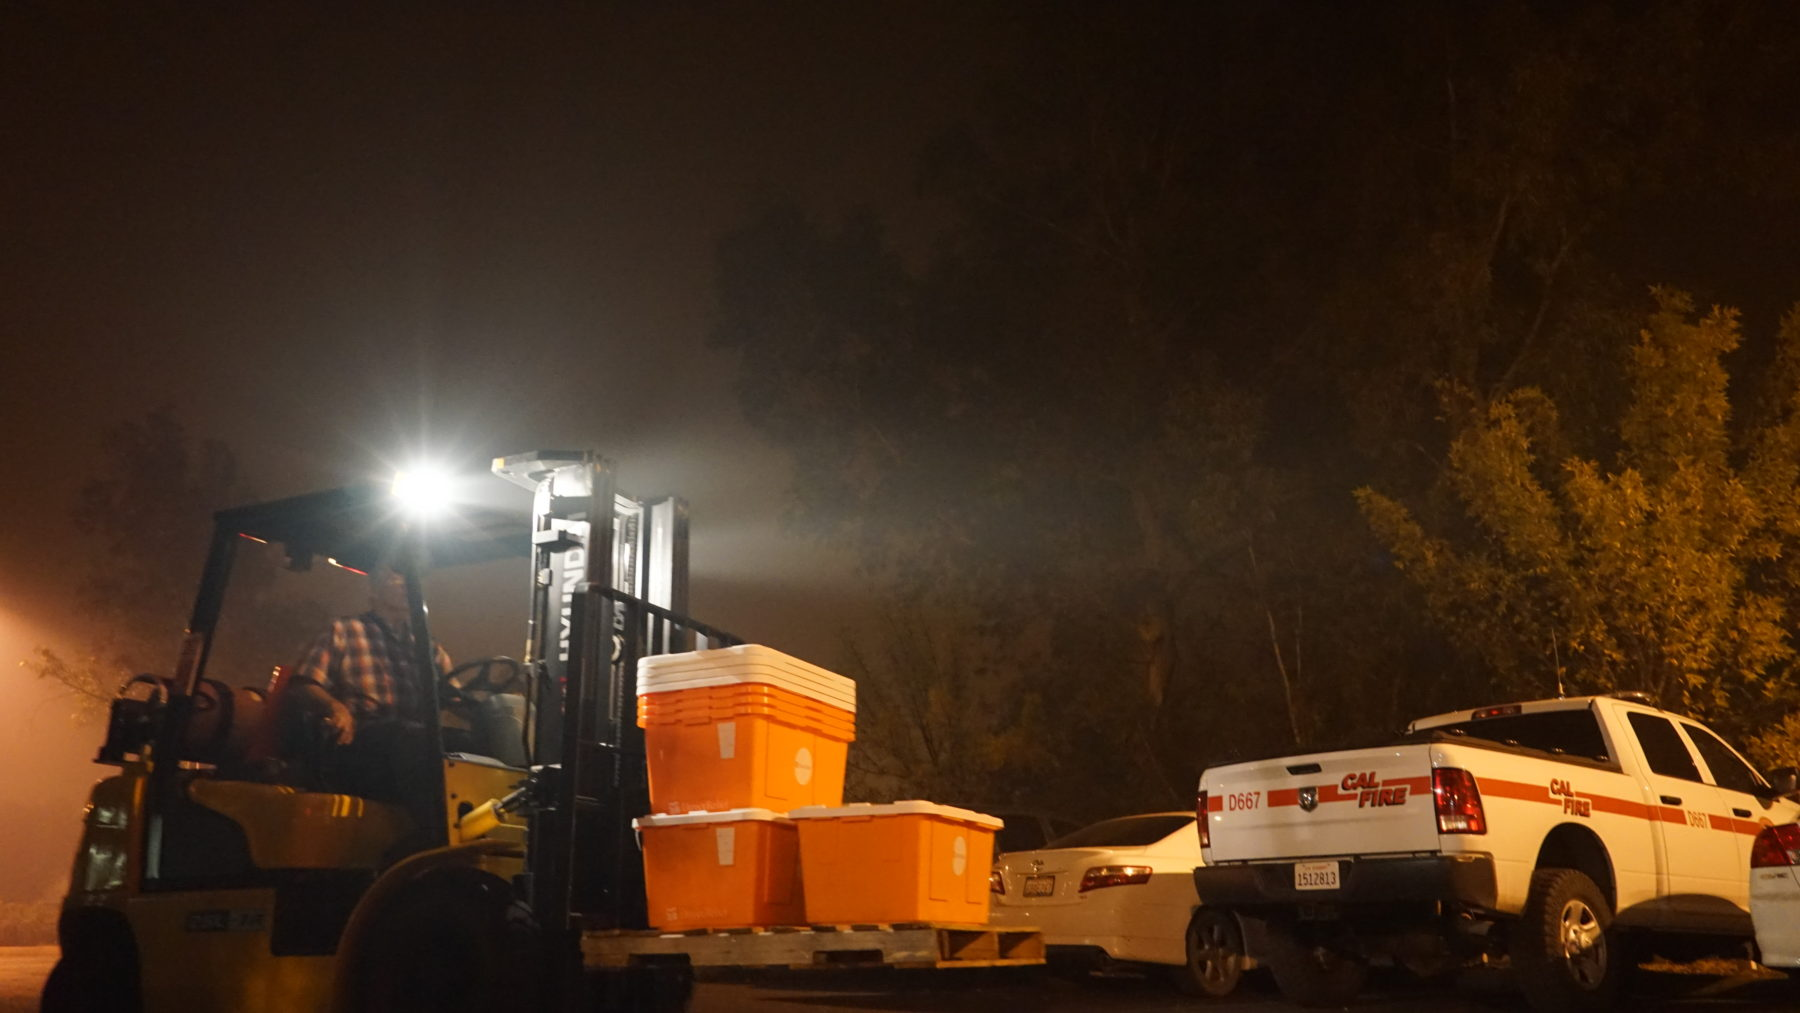 Direct Relief supplies arrive in Butte County, CA to assist wildfire relief efforts. (Drew Fletcher/Direct Relief)